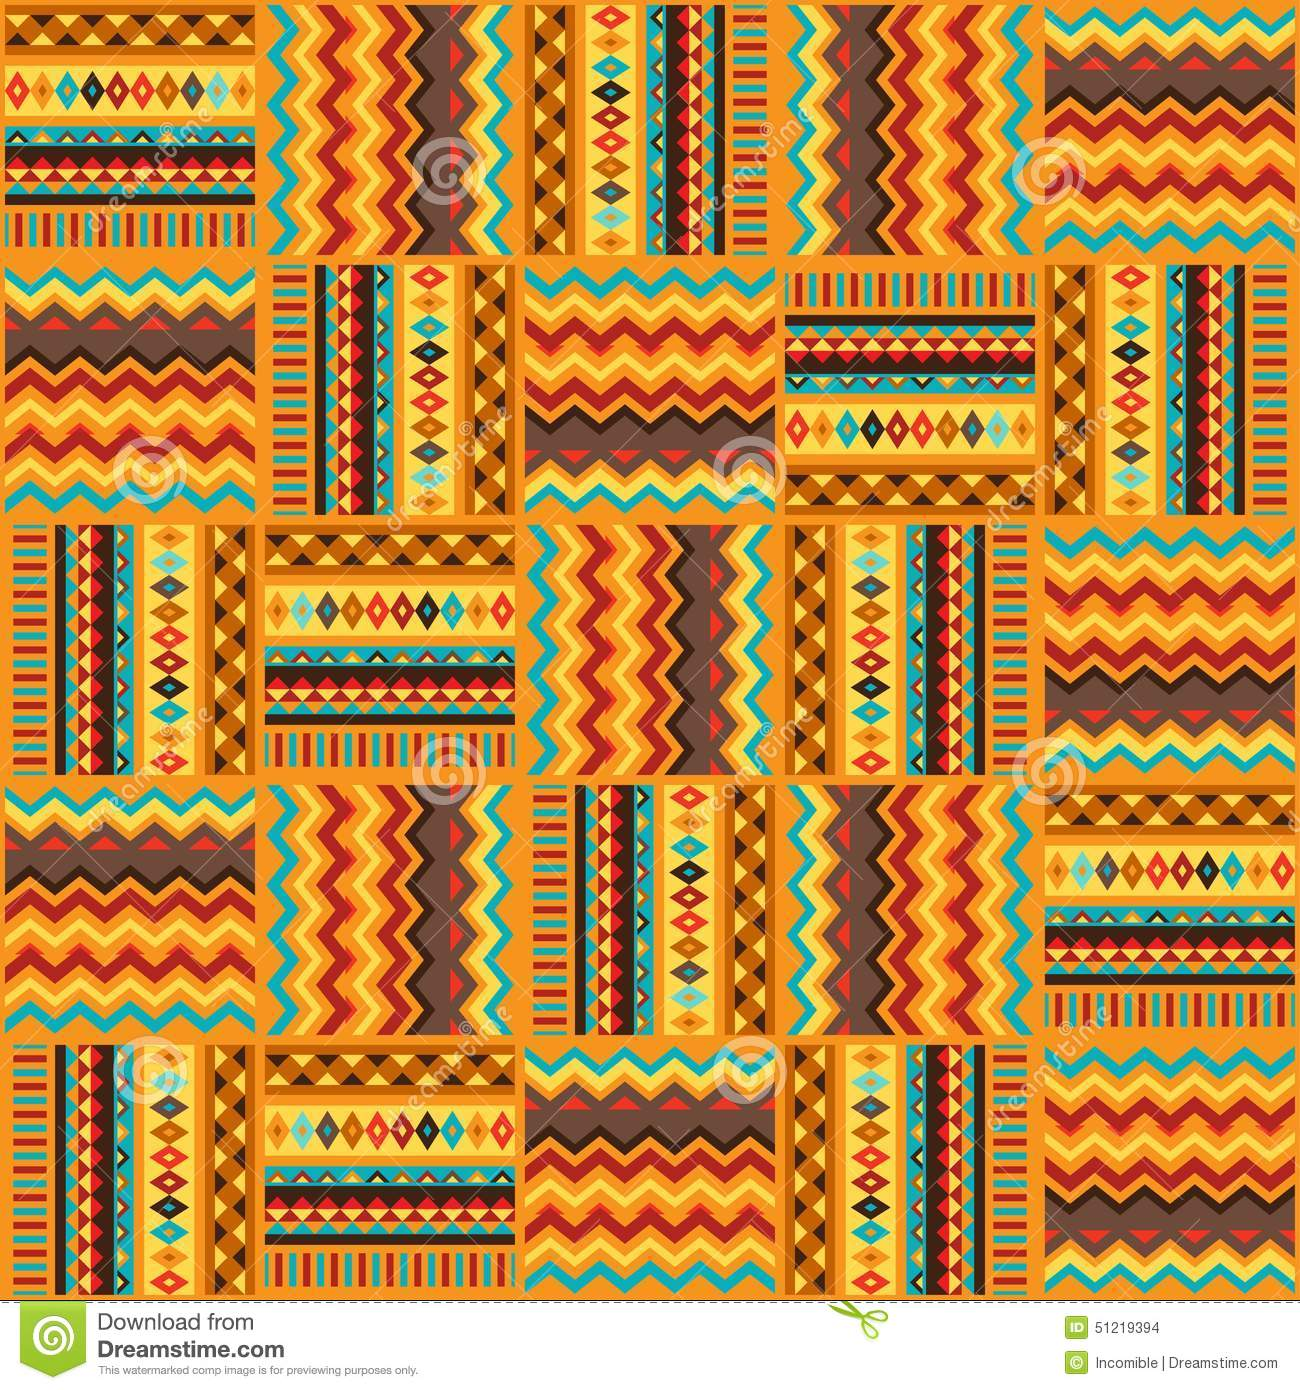 Ethnic ornament abstract geometric seamless fabric